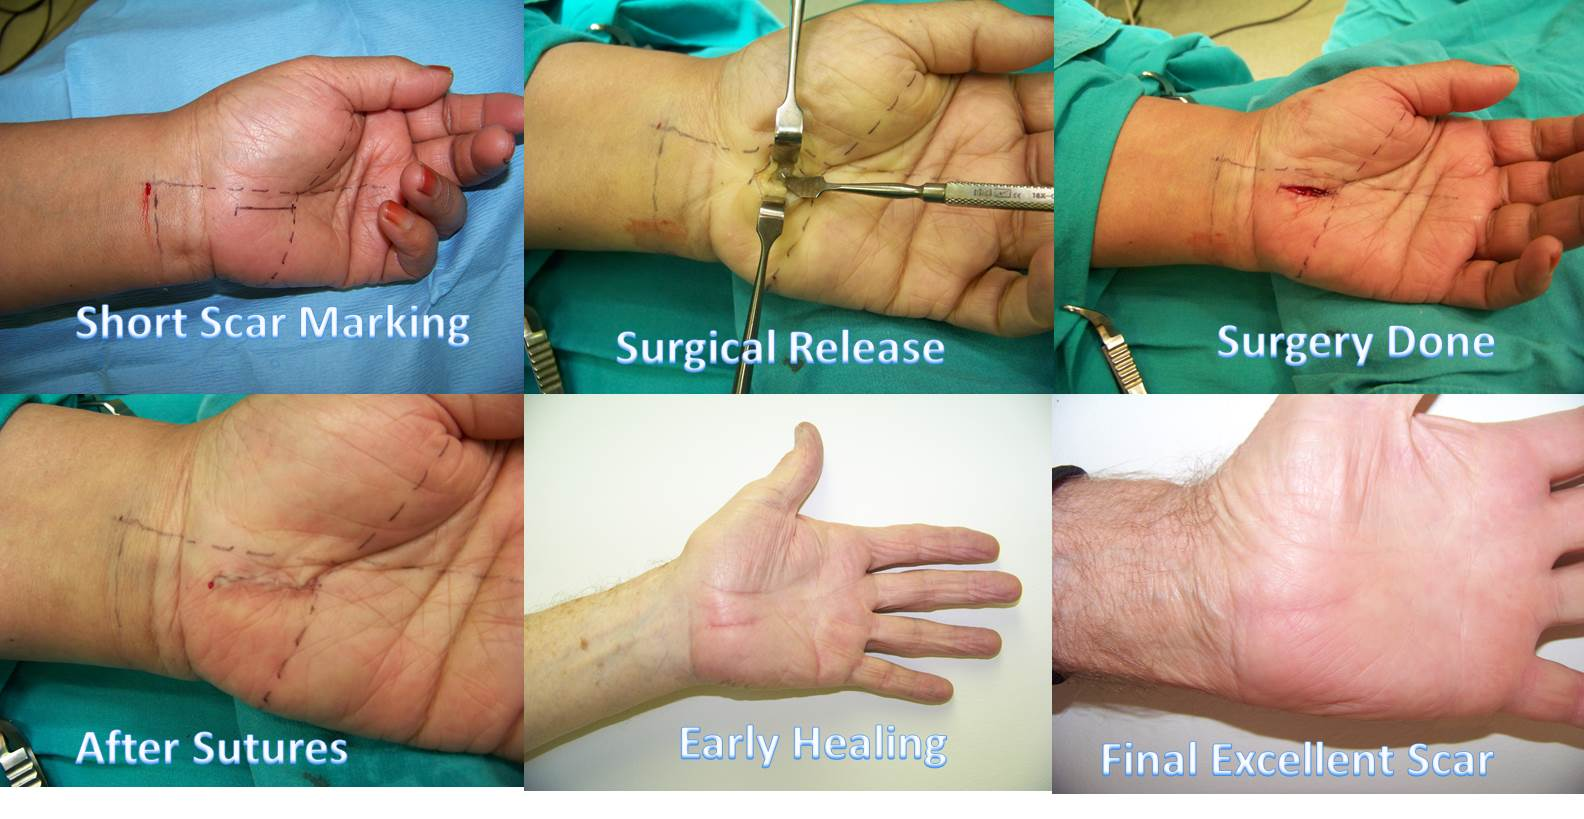 Carpal Tunnel Surgery - short scar open technique and results